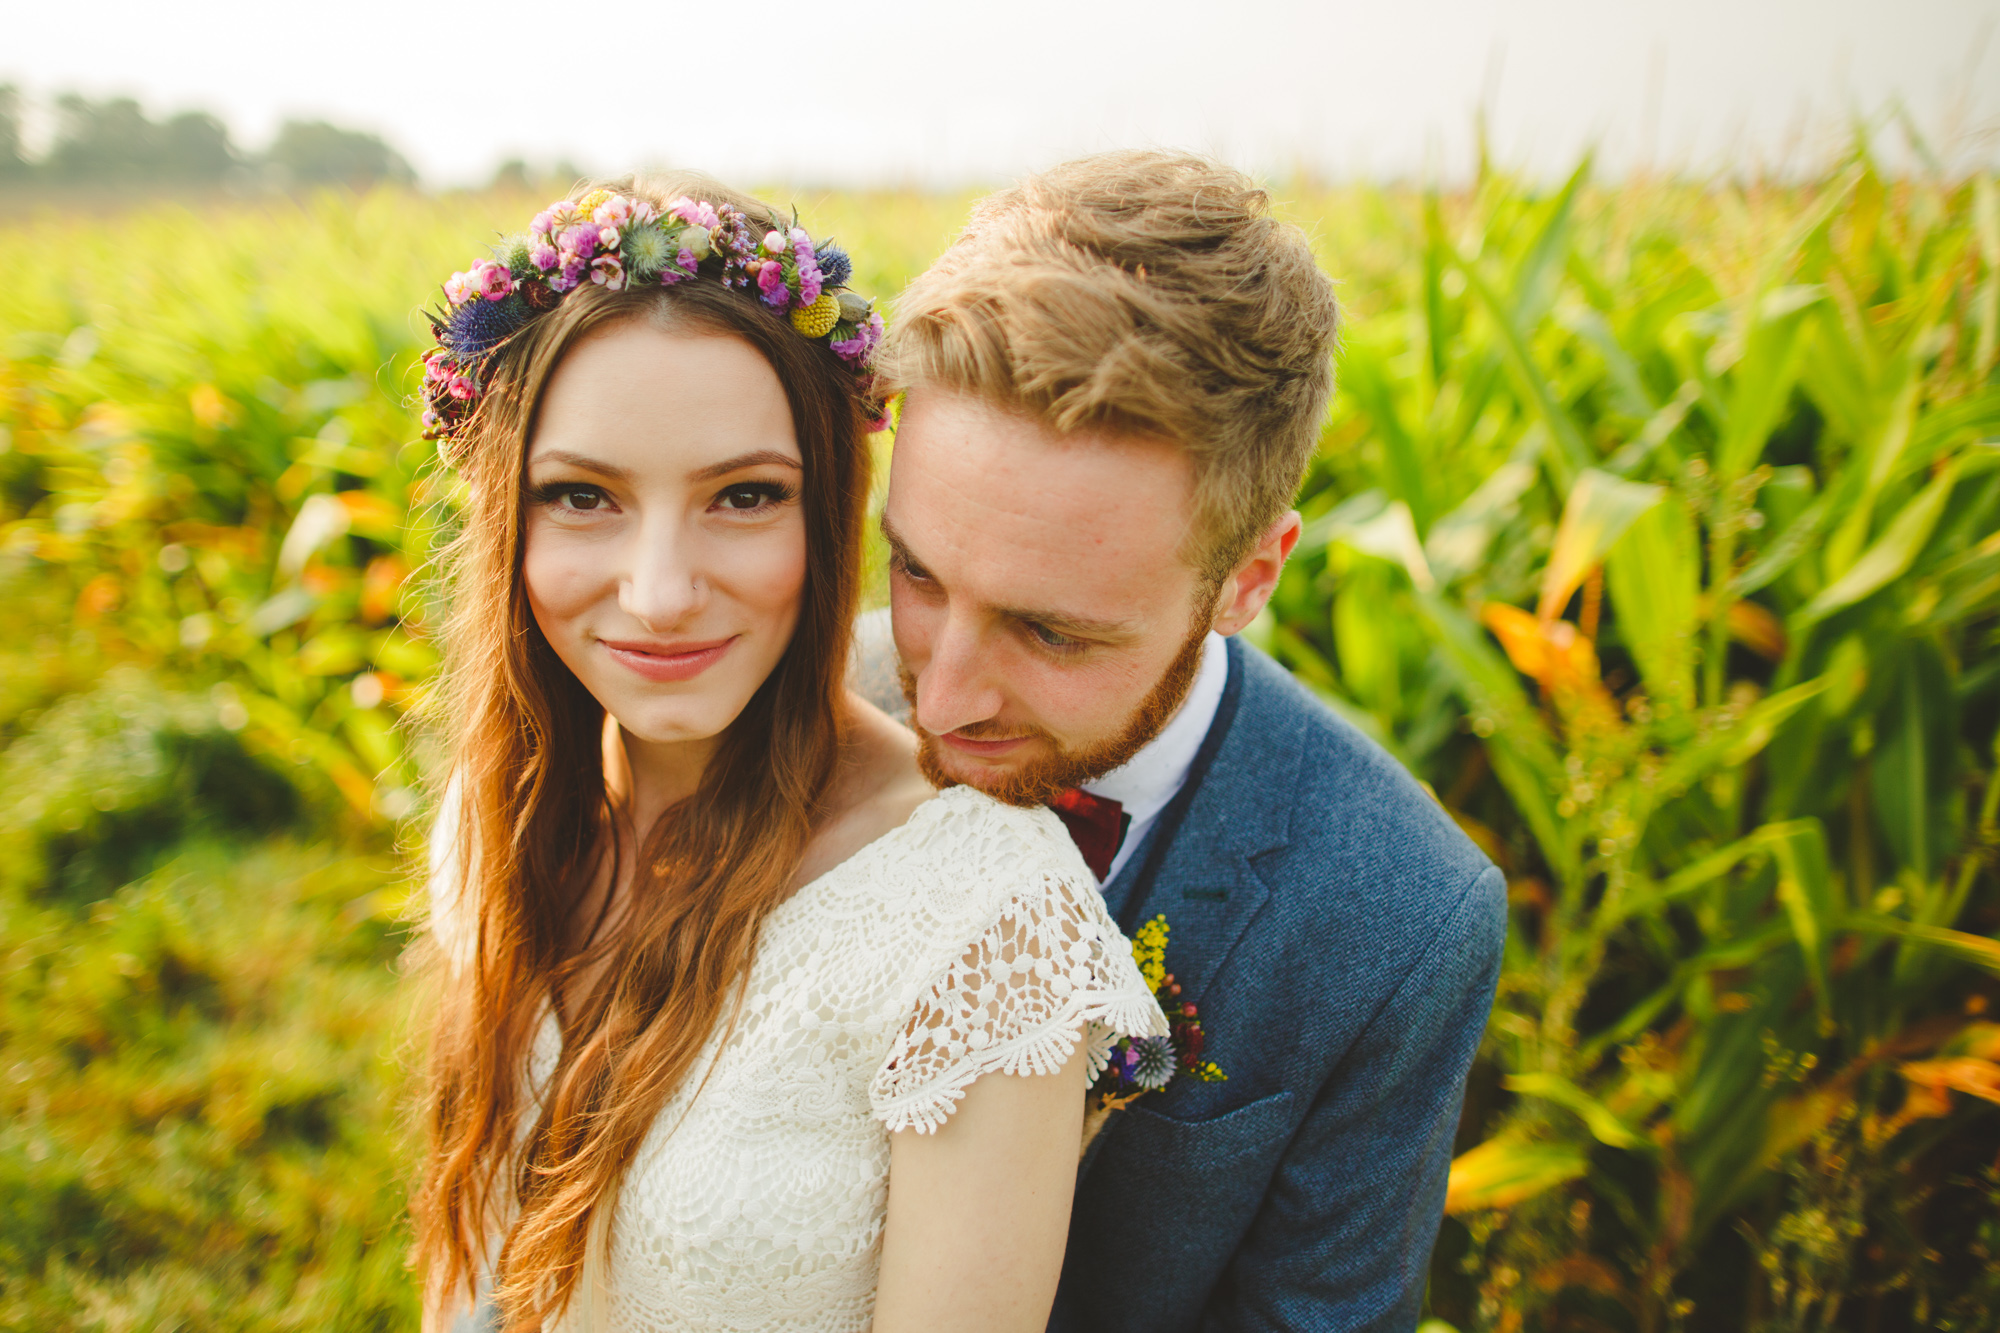 alternative-wedding-photographer-uk-camera-hannah-18.jpg